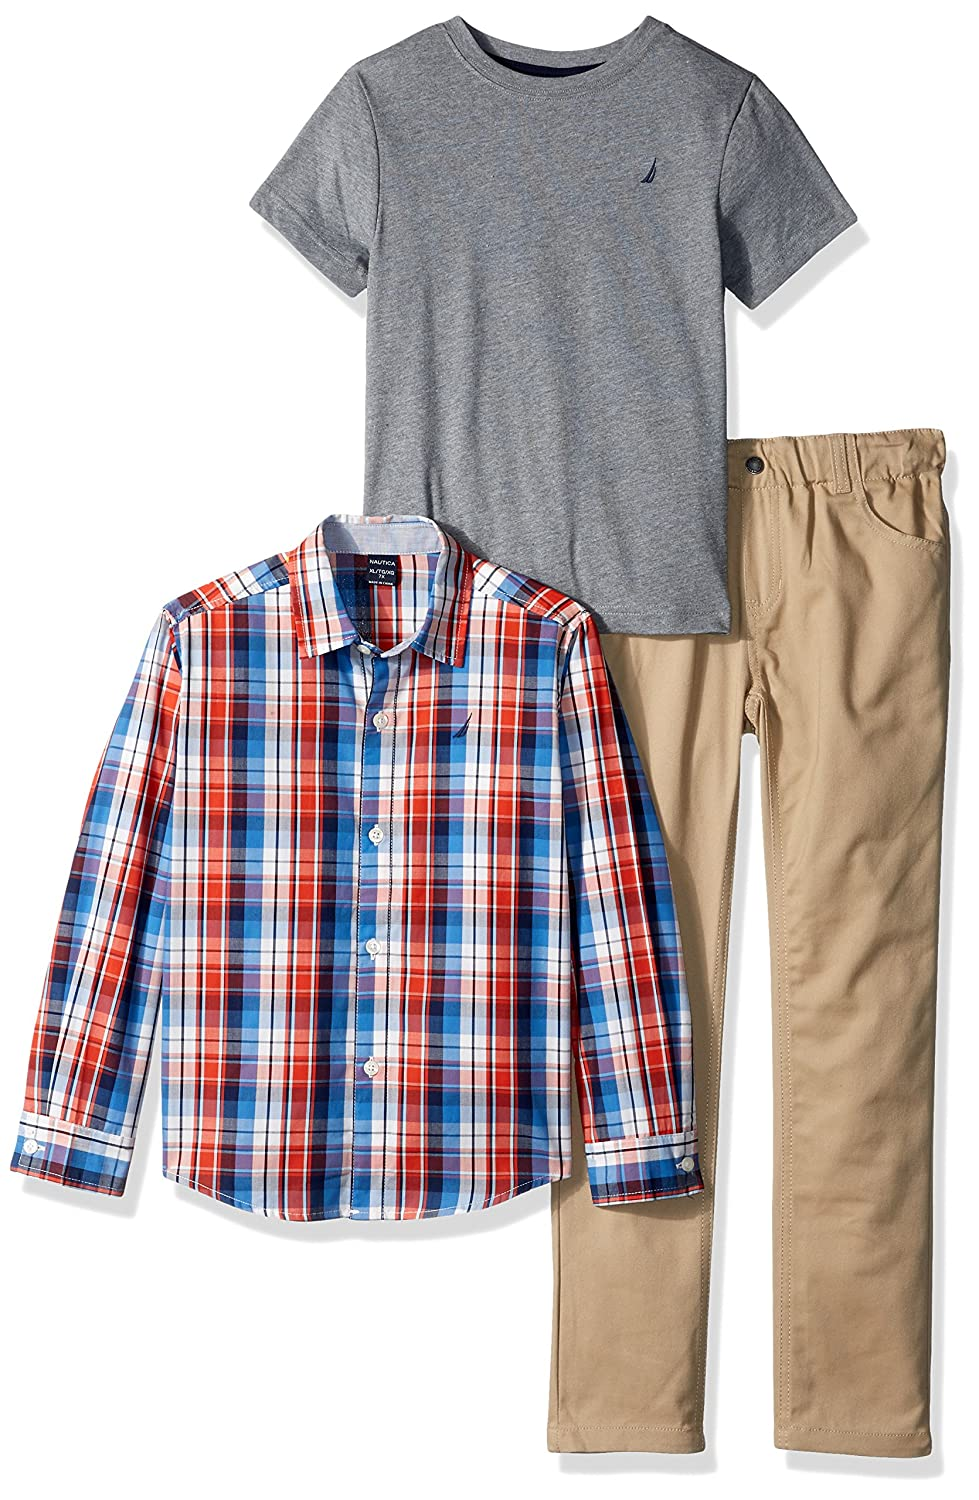 Nautica Boys' Little Long Sleeve Button Up Tee and Pant Set